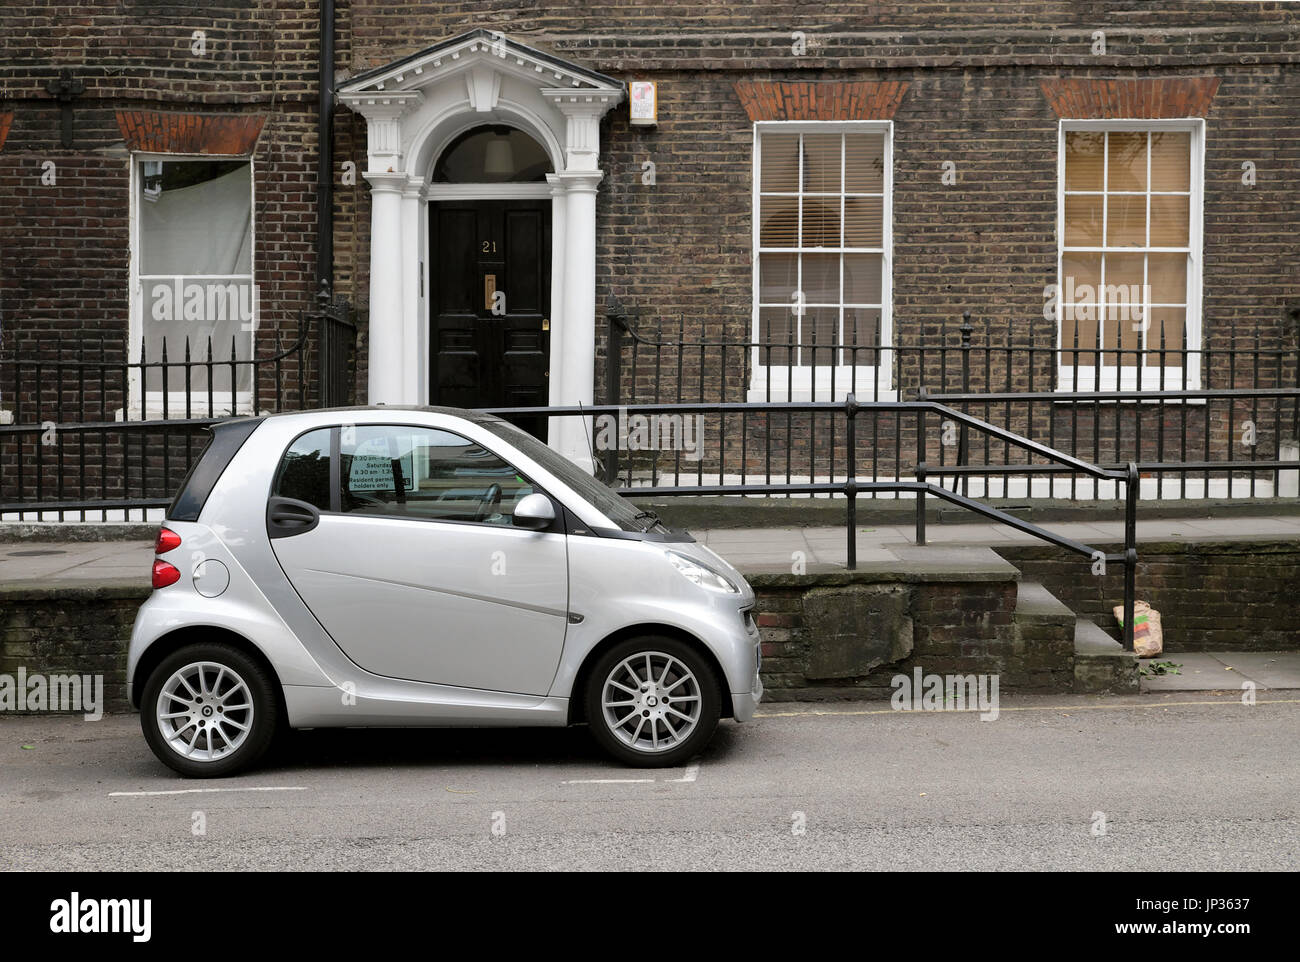 Silver fuel efficient Smart Car parked outside a Georgian house in London N1 UK   KATHY DEWITT - Stock Image